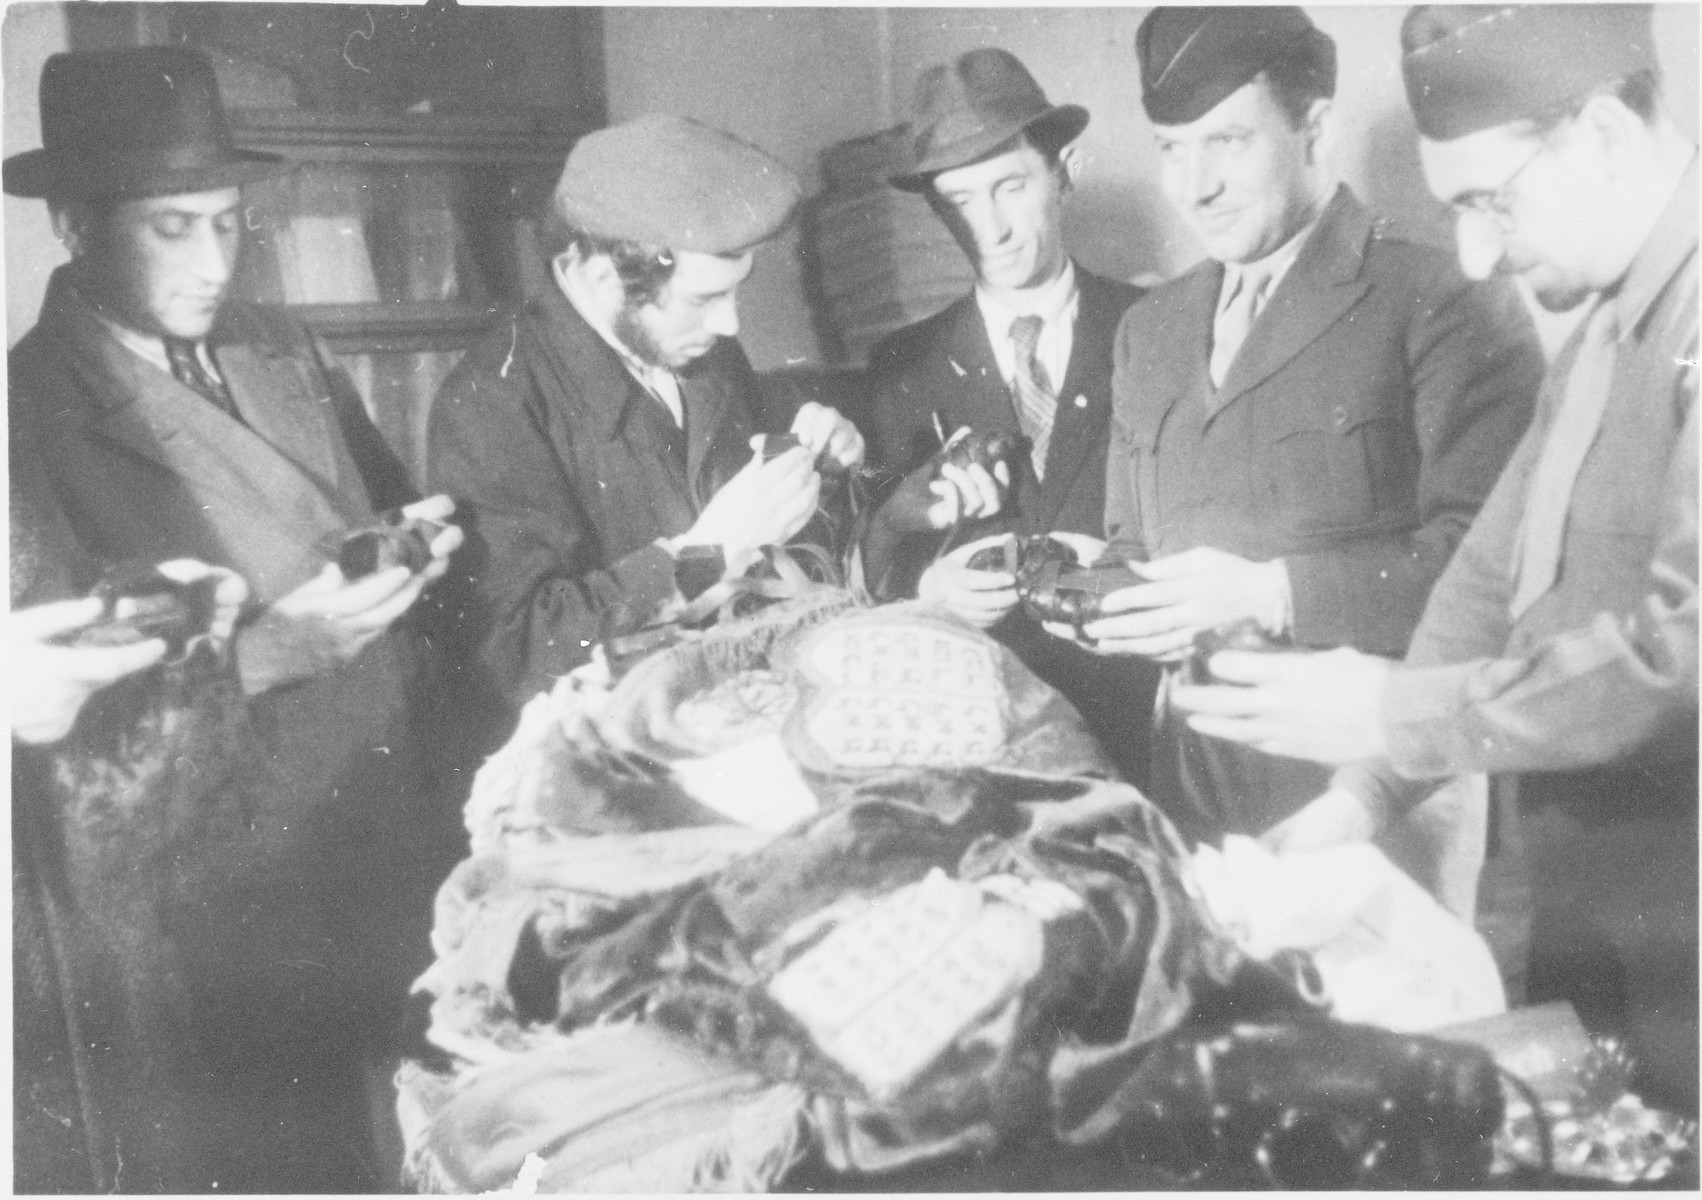 Rabbi Nathan Baruch, ,Rabbi Aviezer Burstein and a group of religious displaced persons sort through various religious articles.